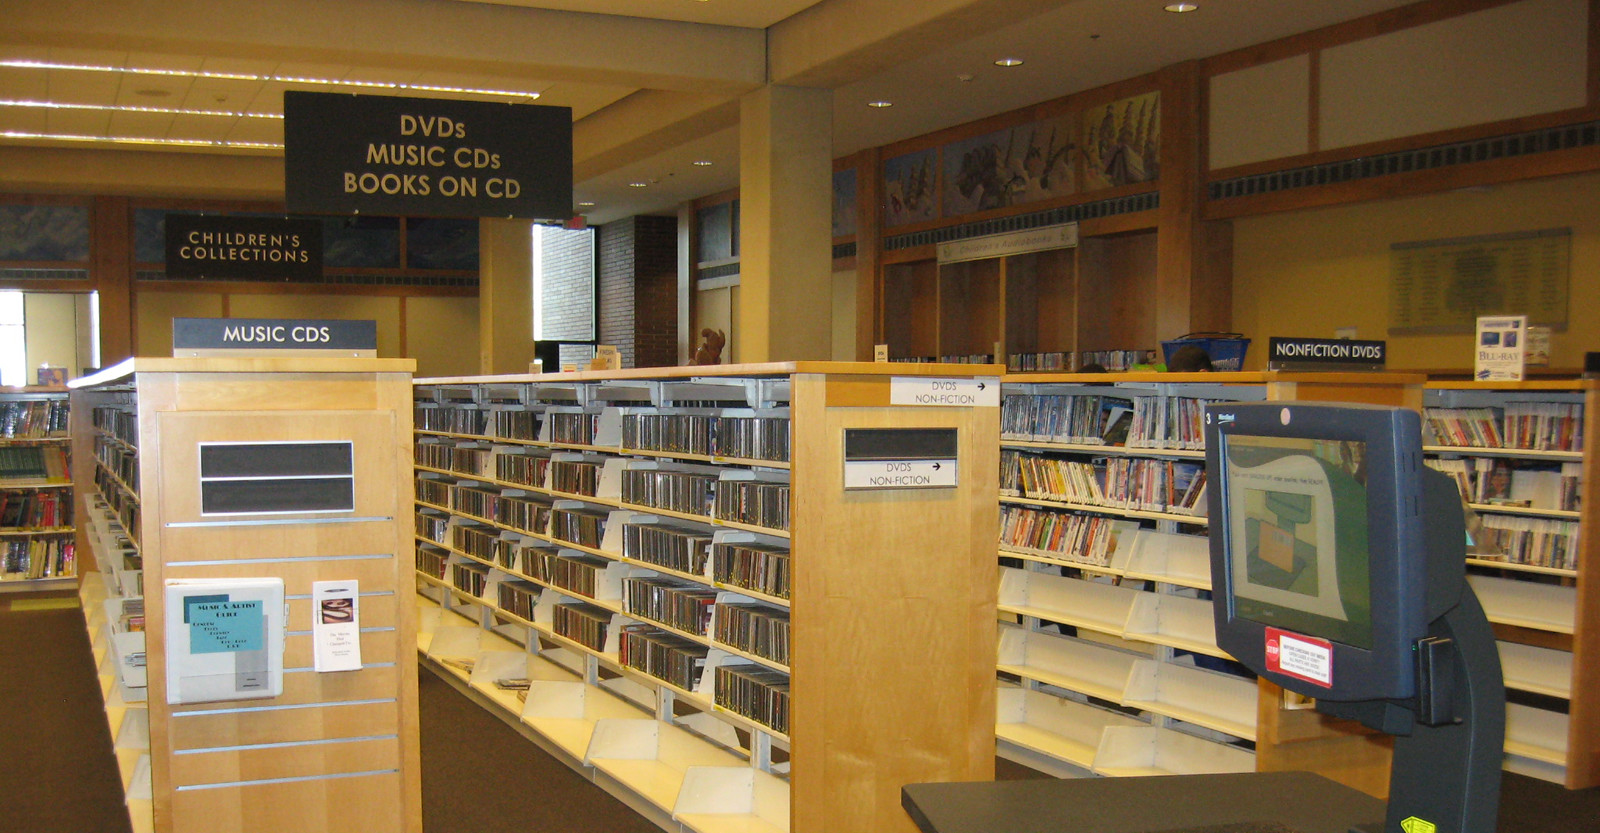 Photo showing the racks of DVD's available to rent from the library